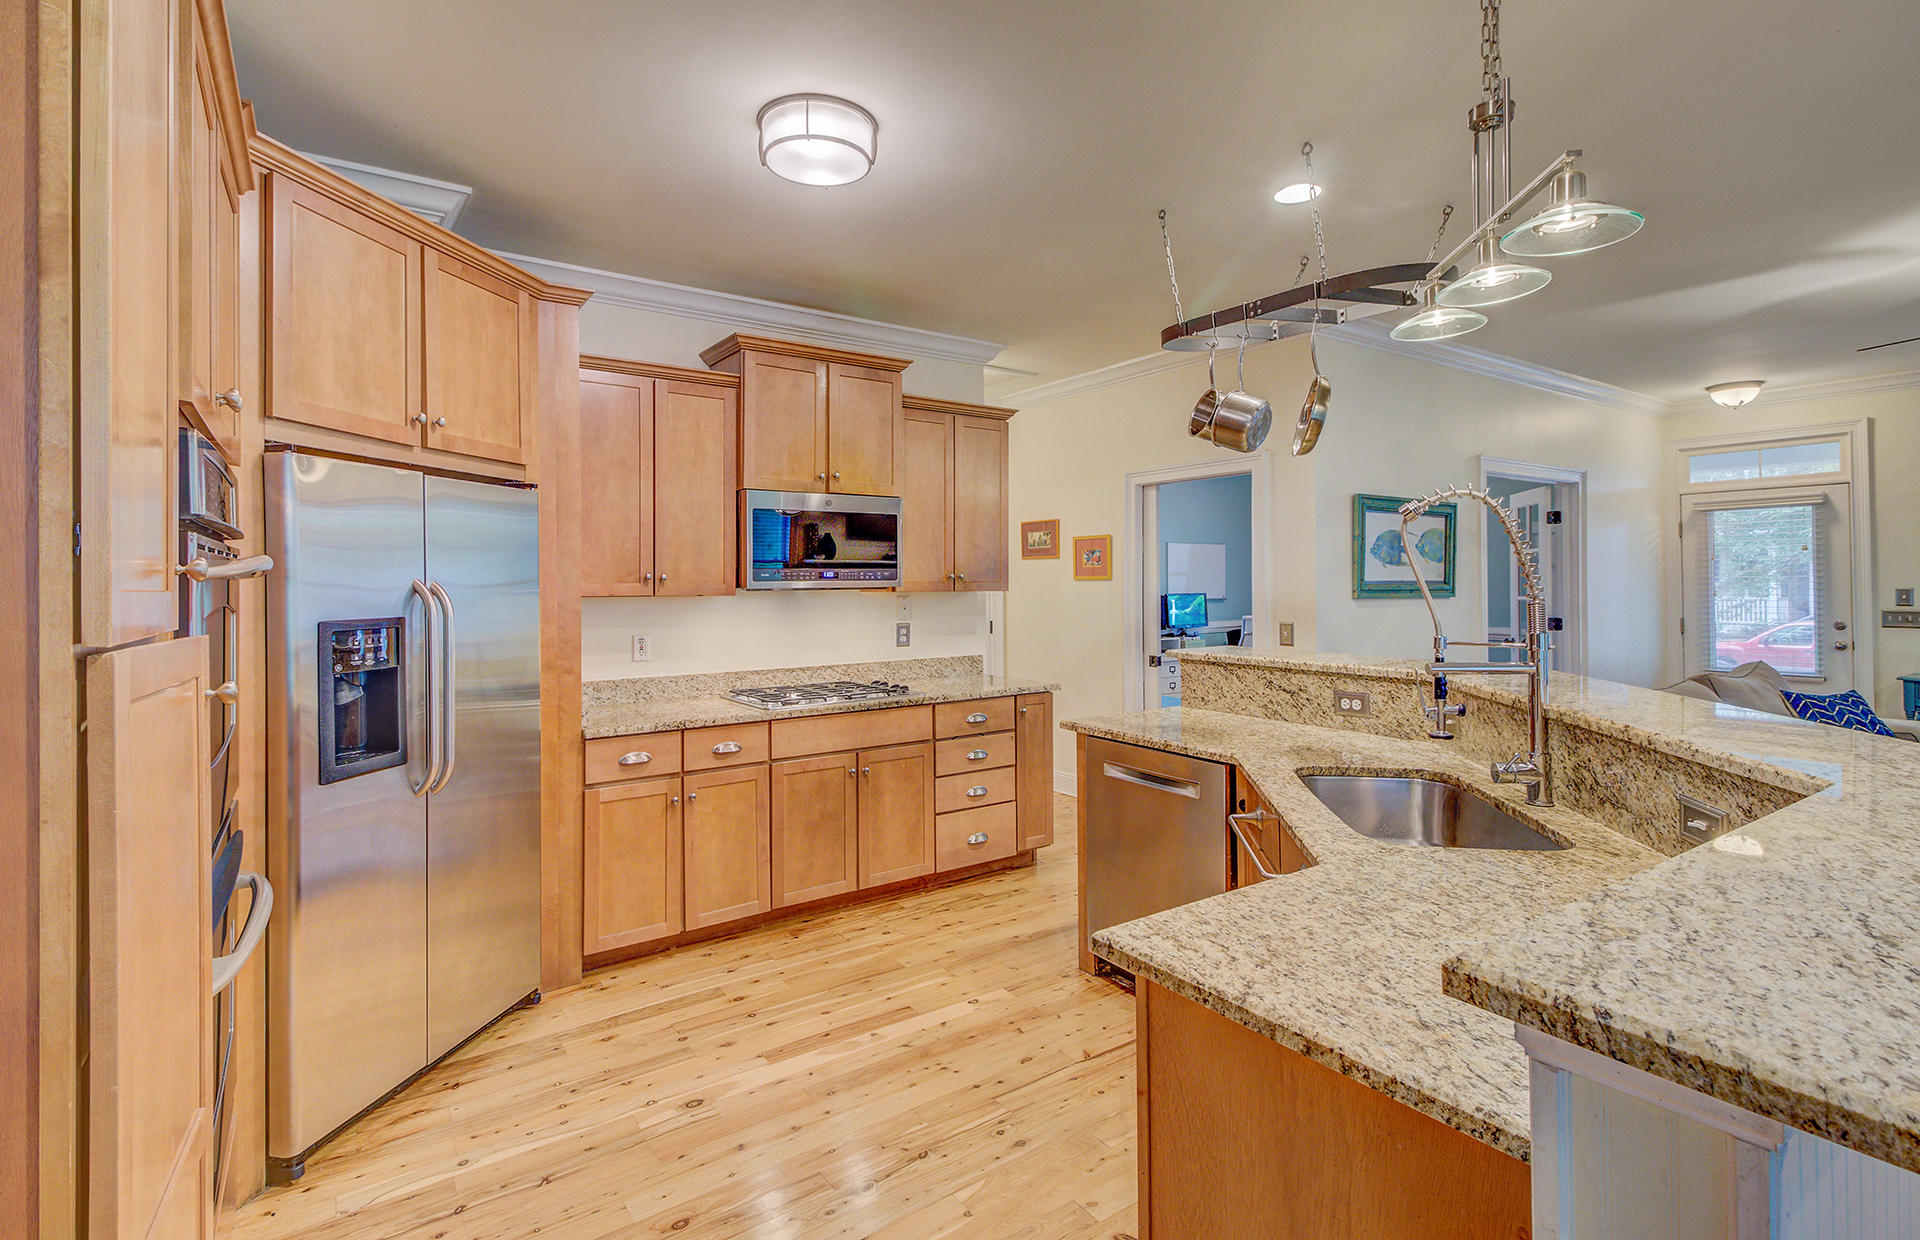 The Villages In St Johns Woods Homes For Sale - 5032 Coral Reef, Johns Island, SC - 27